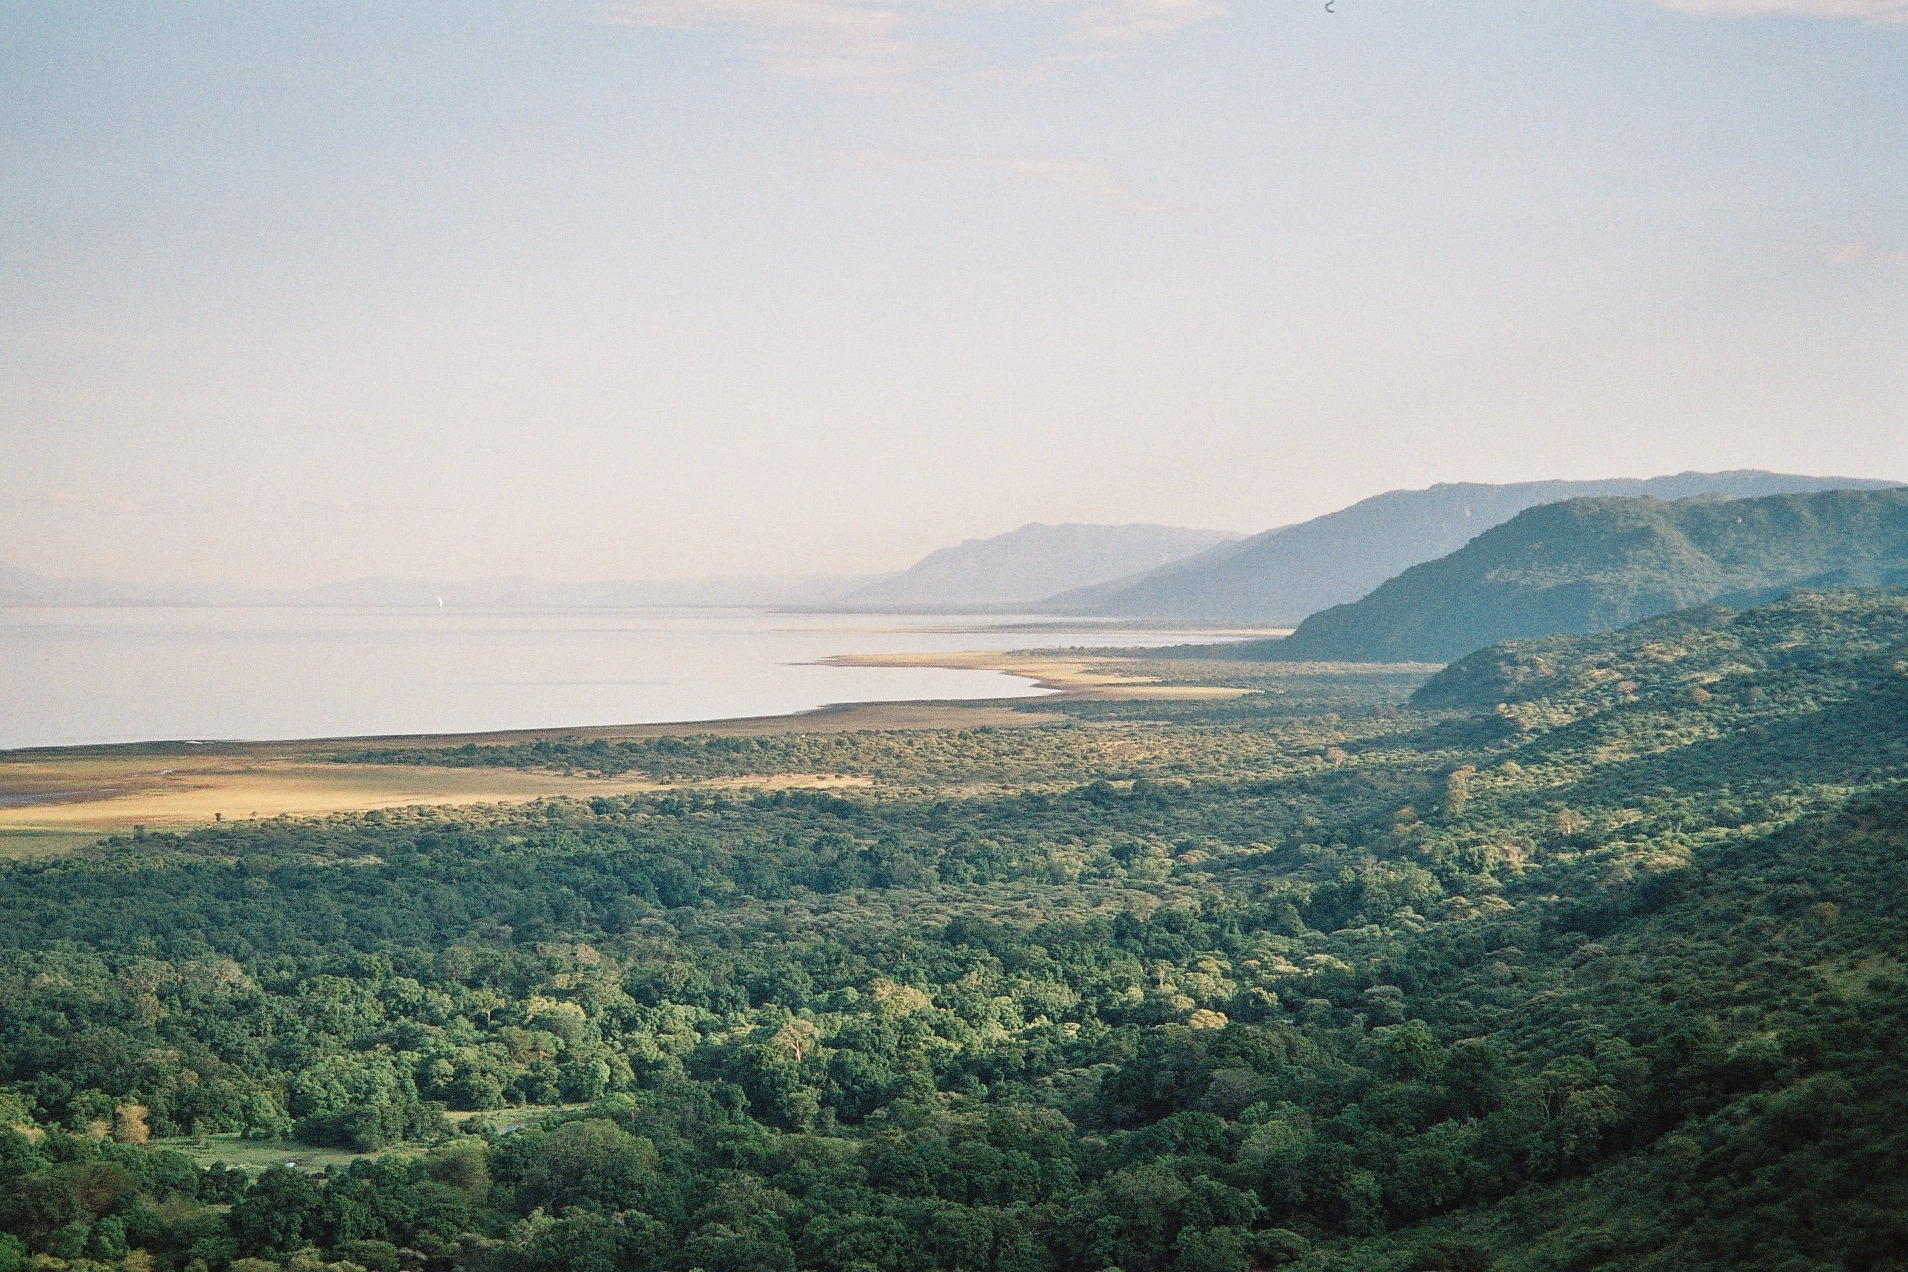 Lake Manyara at the Great Rift Valley, great rift valley, Lake Manyara